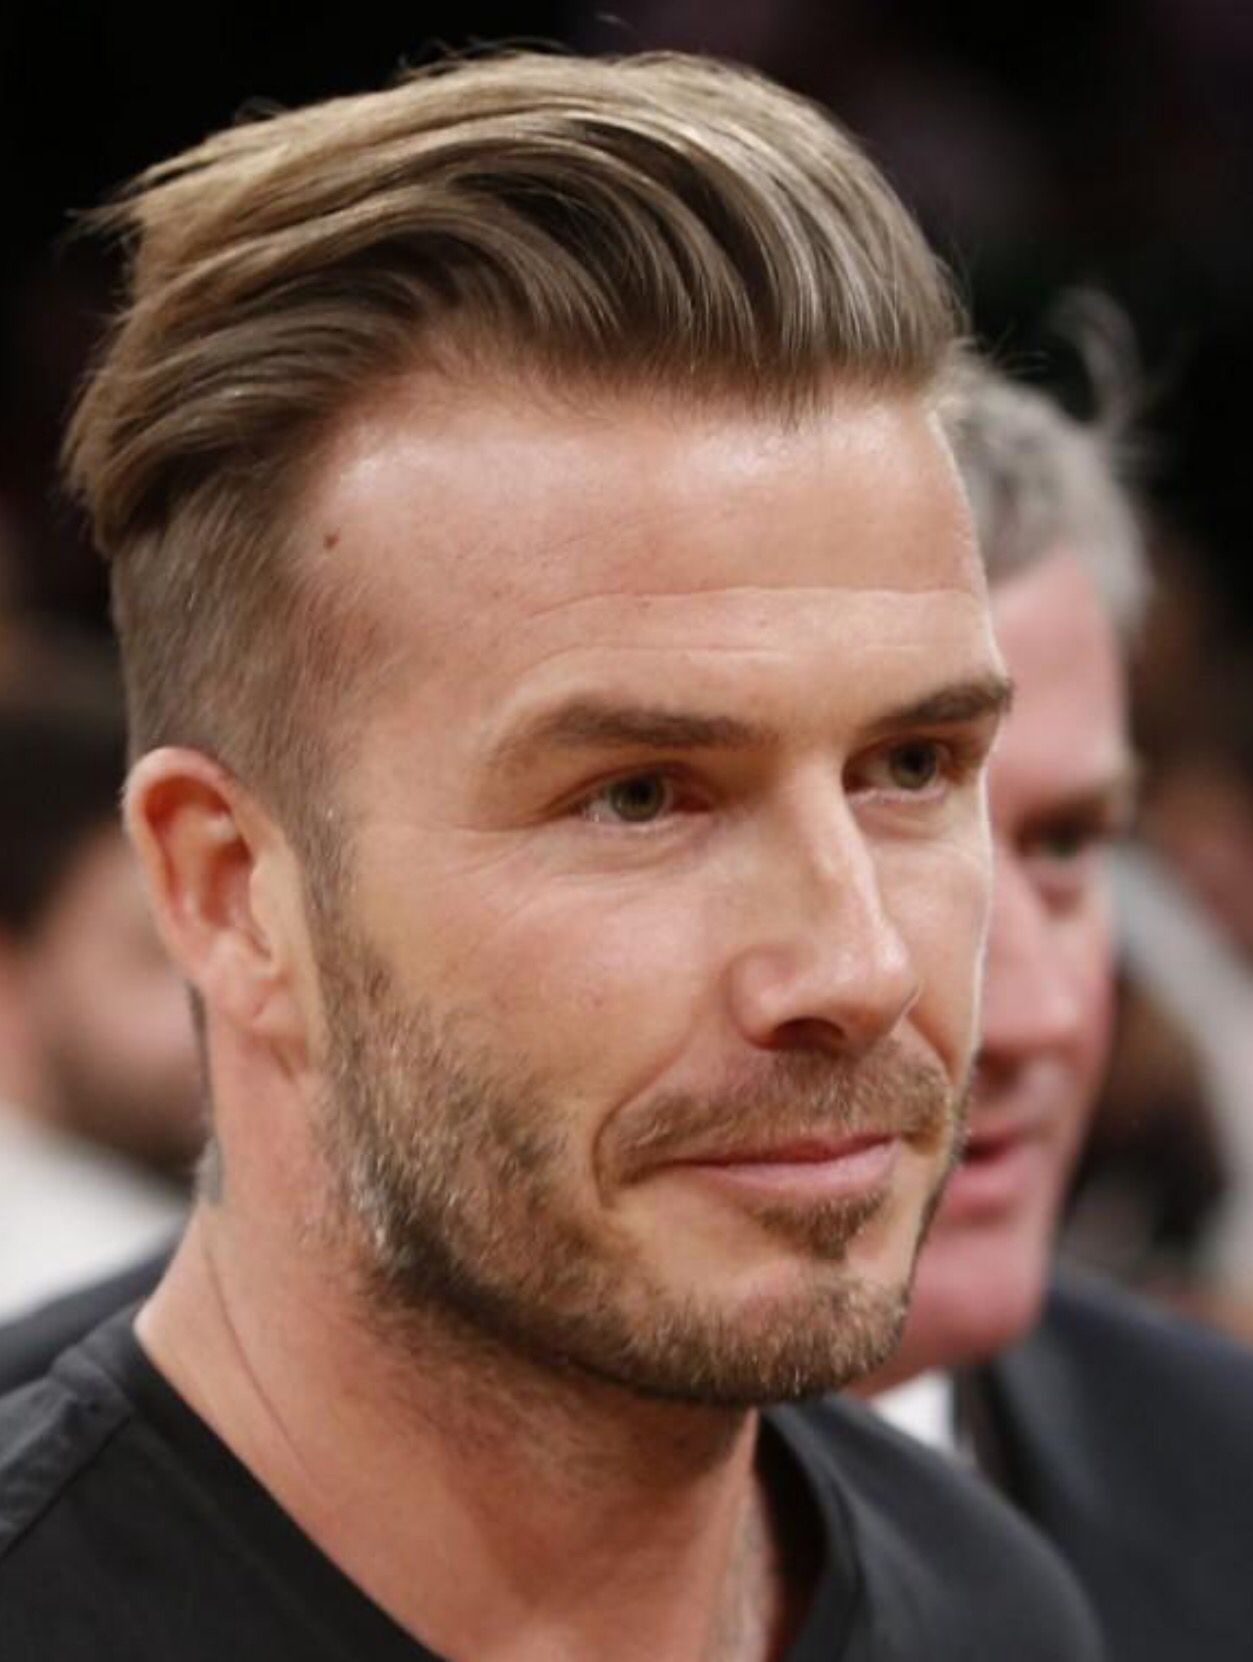 Undercut Comb Over David Beckham Hairstyle Beckham Hair Beckham Haircut